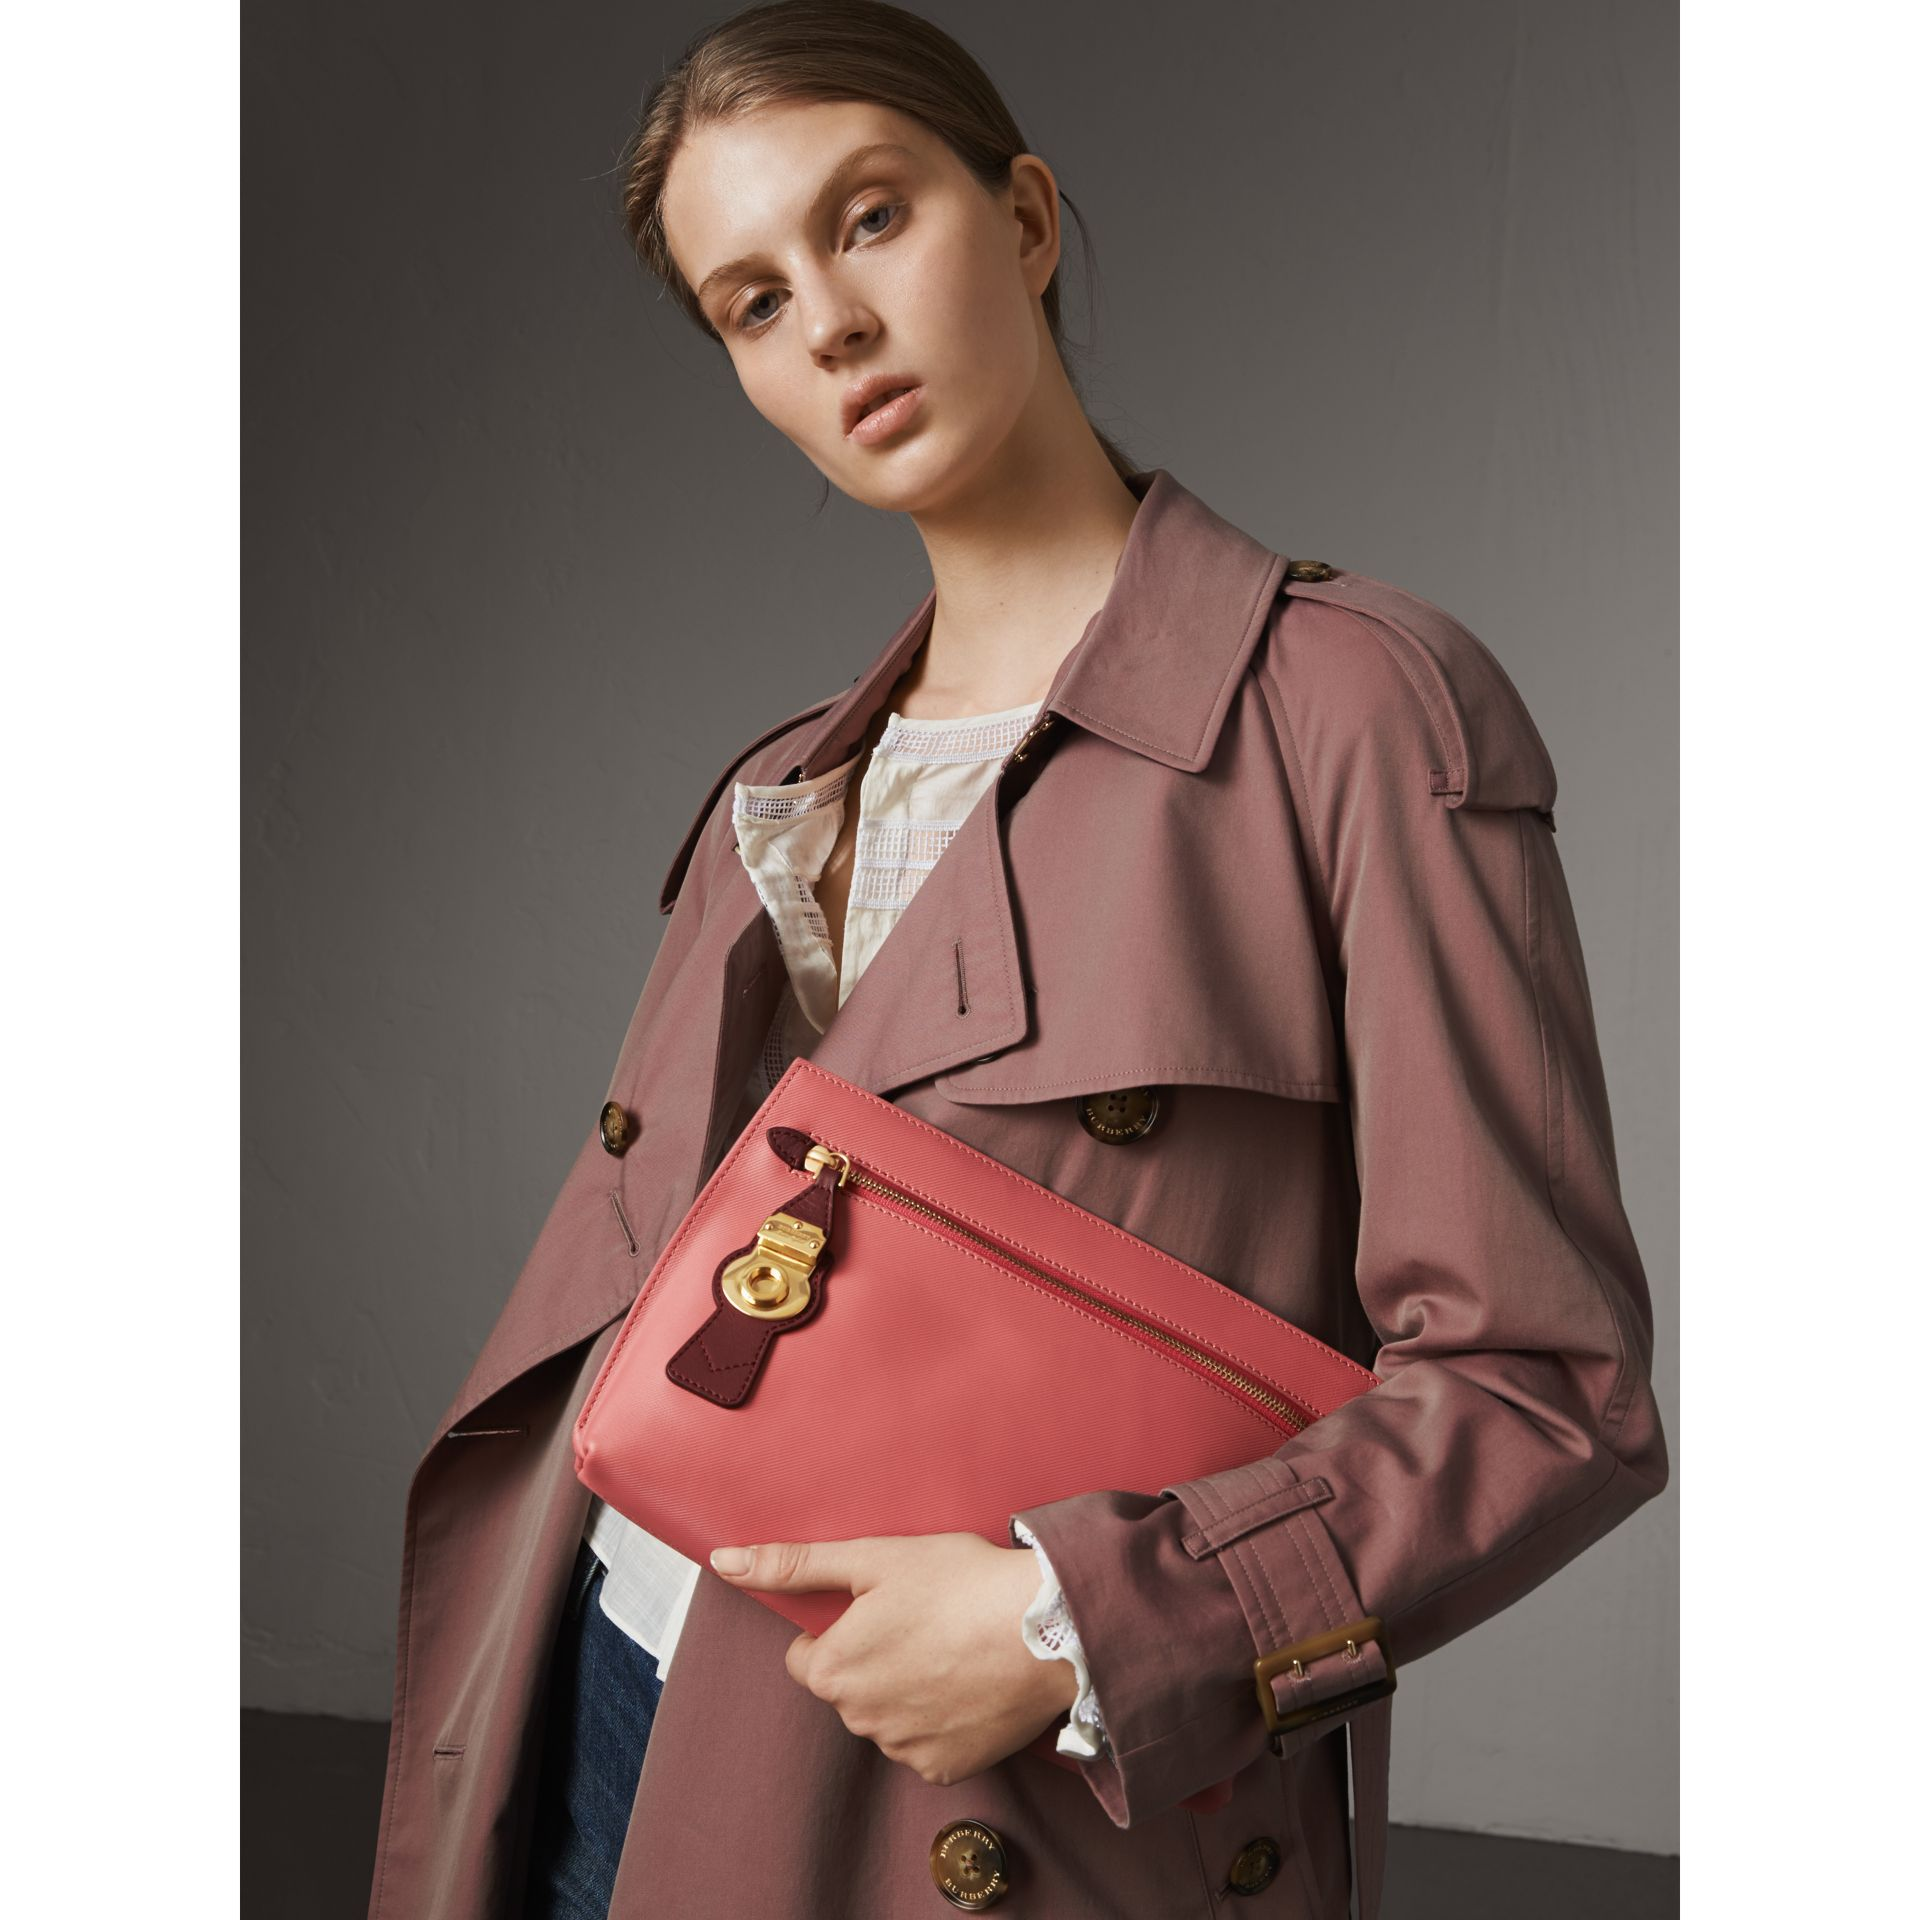 Pochette wristlet en cuir trench bicolore (Rose Blossom/rouge Antique) - Femme | Burberry - photo de la galerie 2